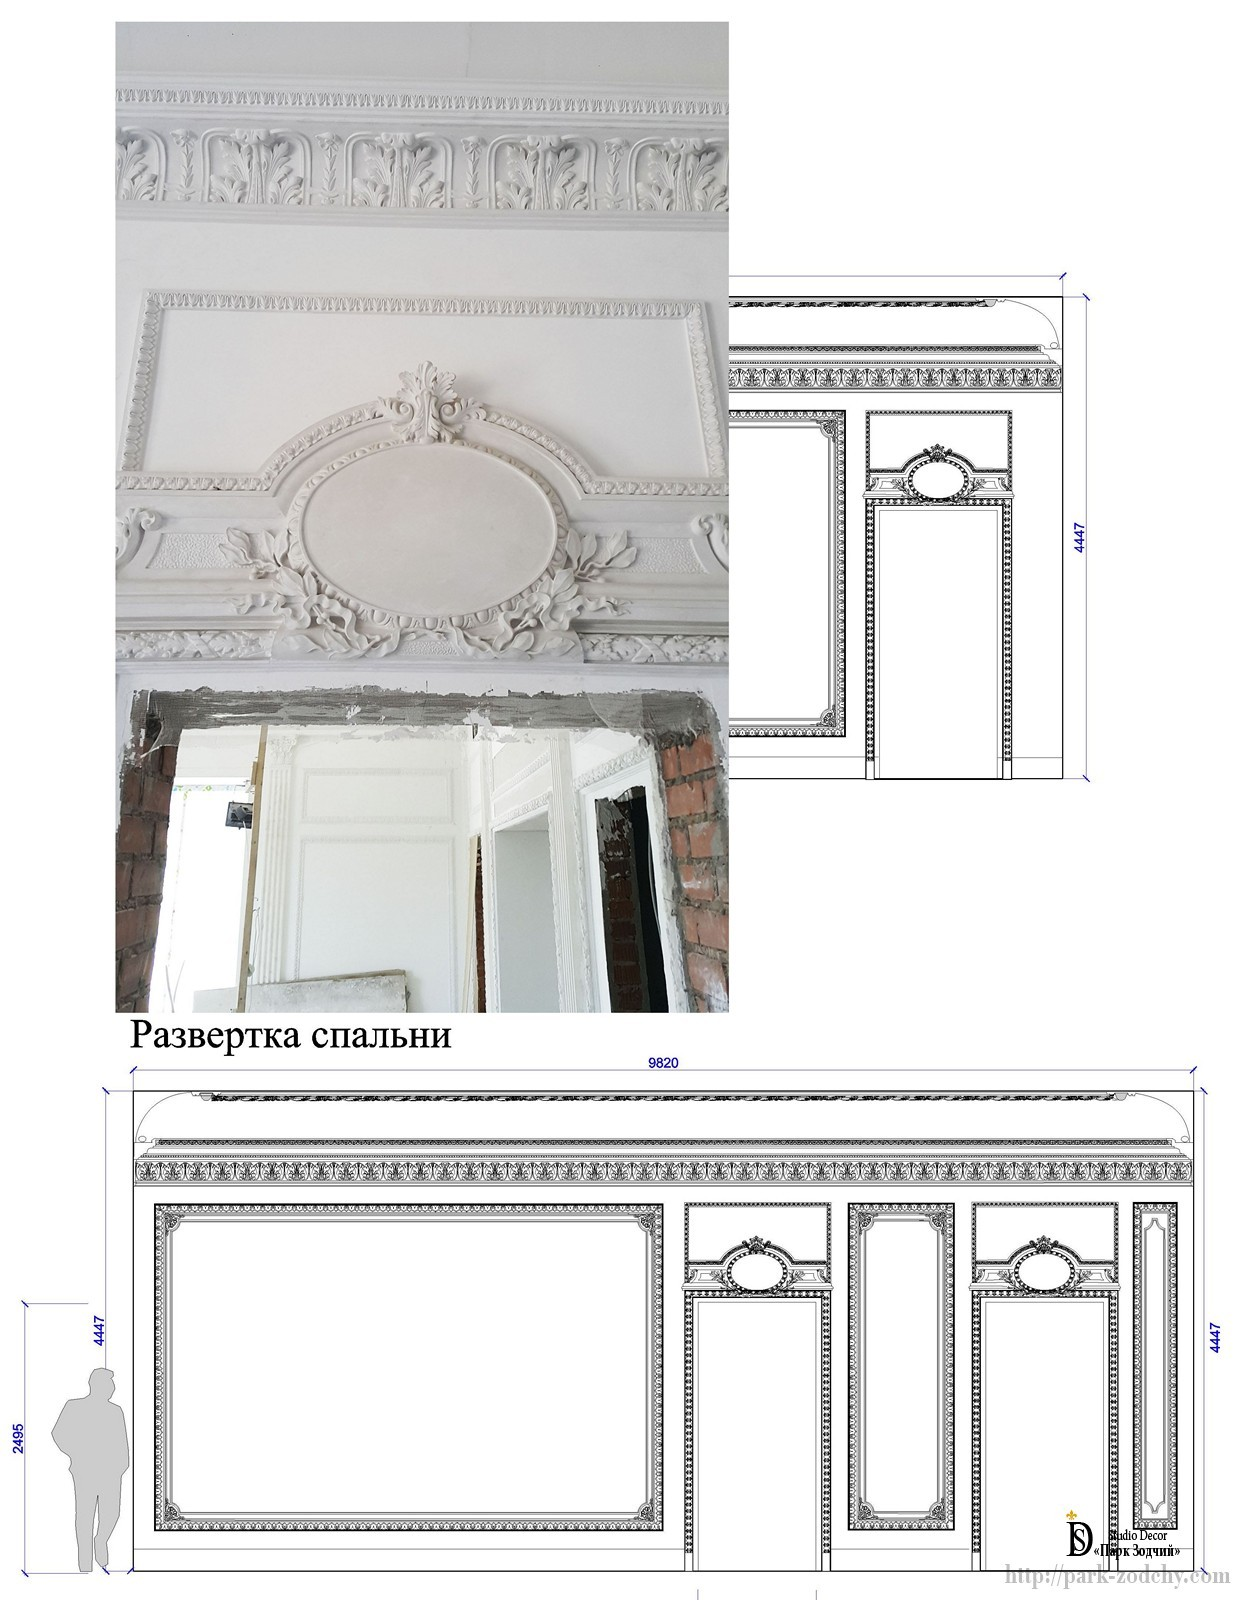 The portal of plaster moldings, photography and project